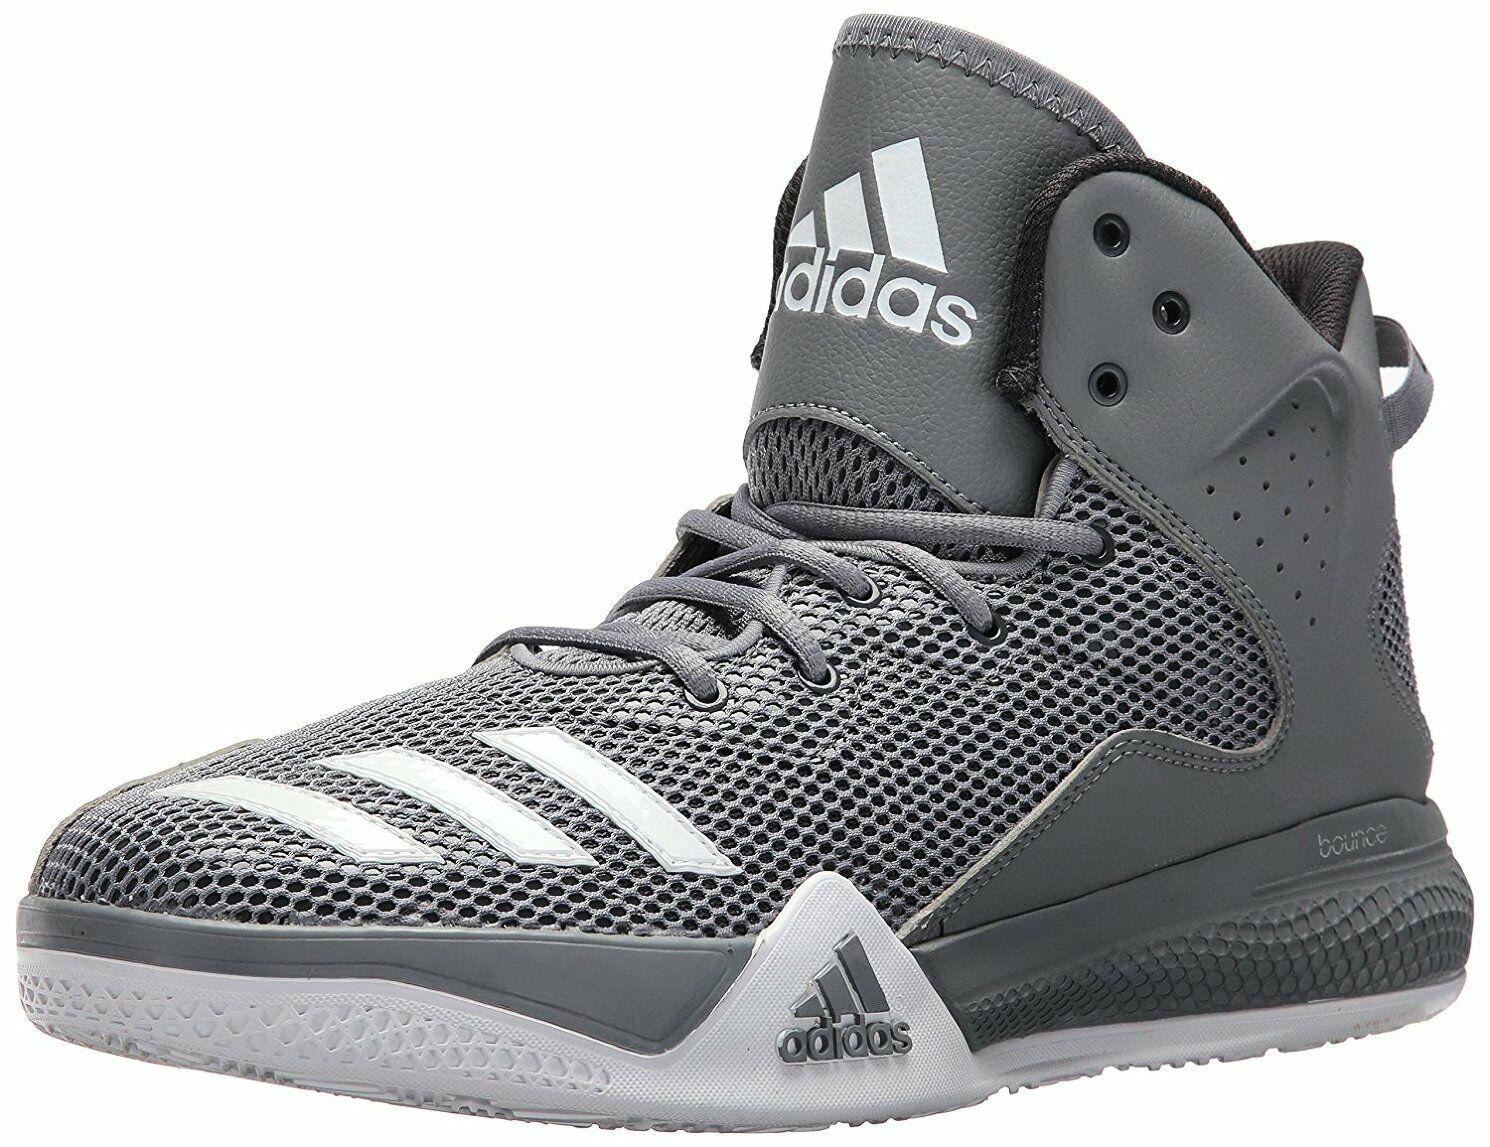 Adidas Aq7754 Performance Men's DT Mid Basketball  Grey White Dgh  Solid Grey